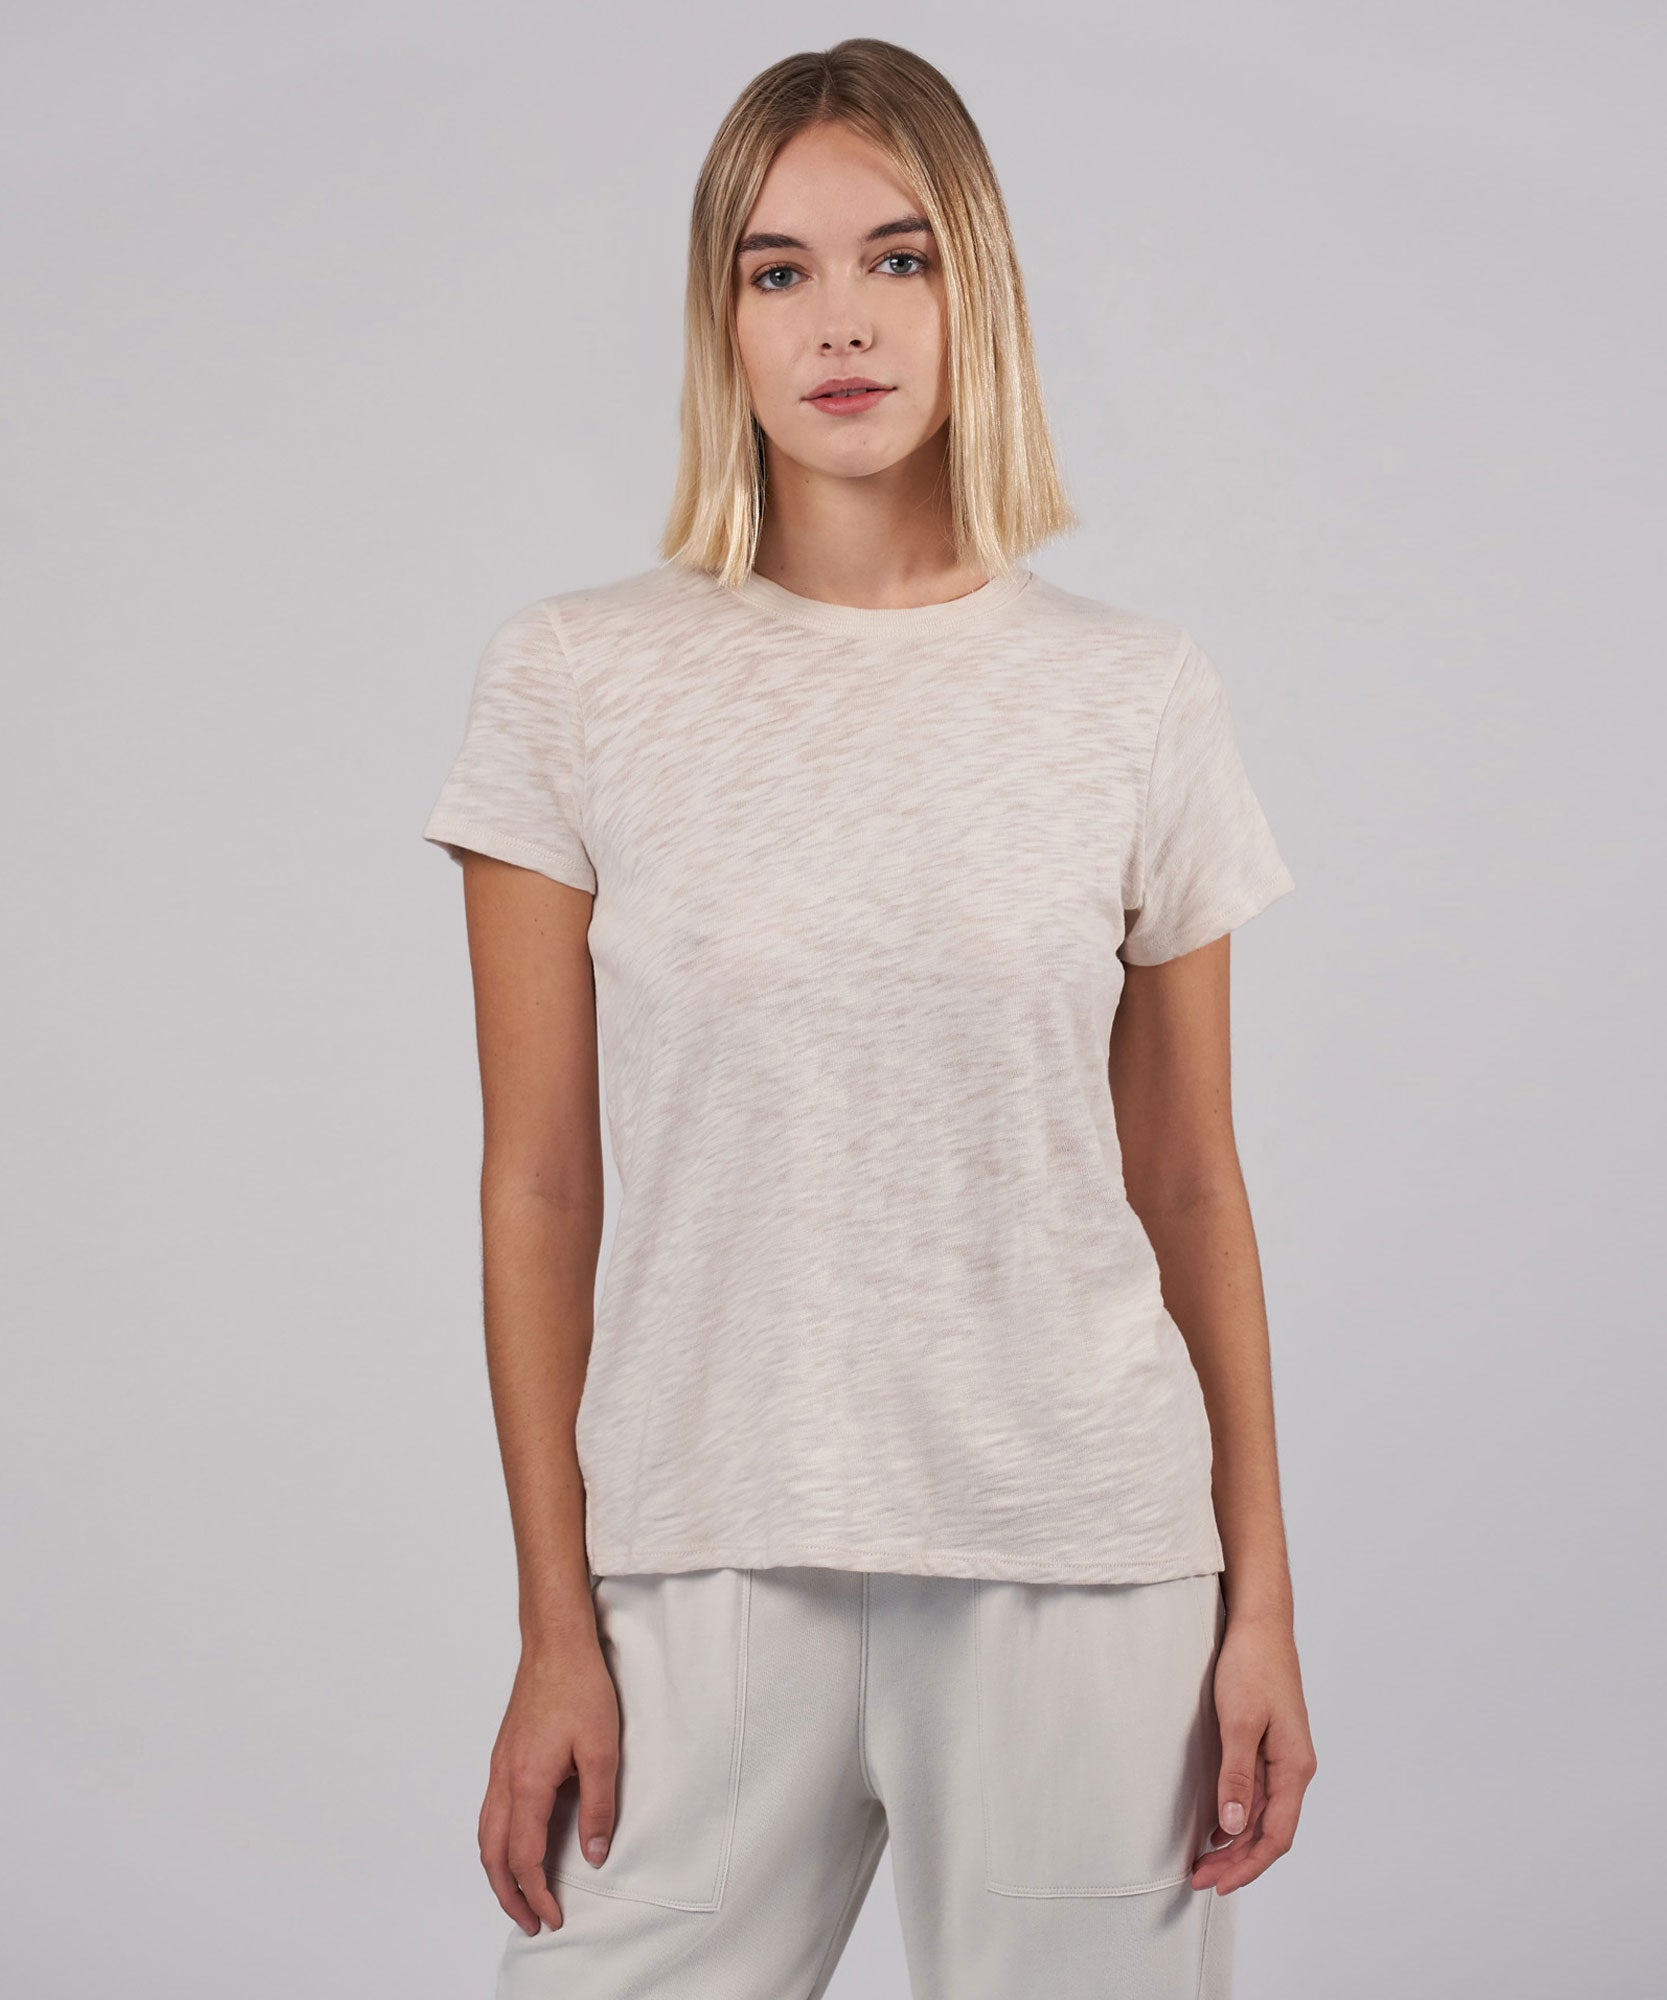 Tan Slub Jersey Schoolboy Crew Neck Tee - Women's Short Sleeve T-Shirt by ATM Anthony Thomas Melillo